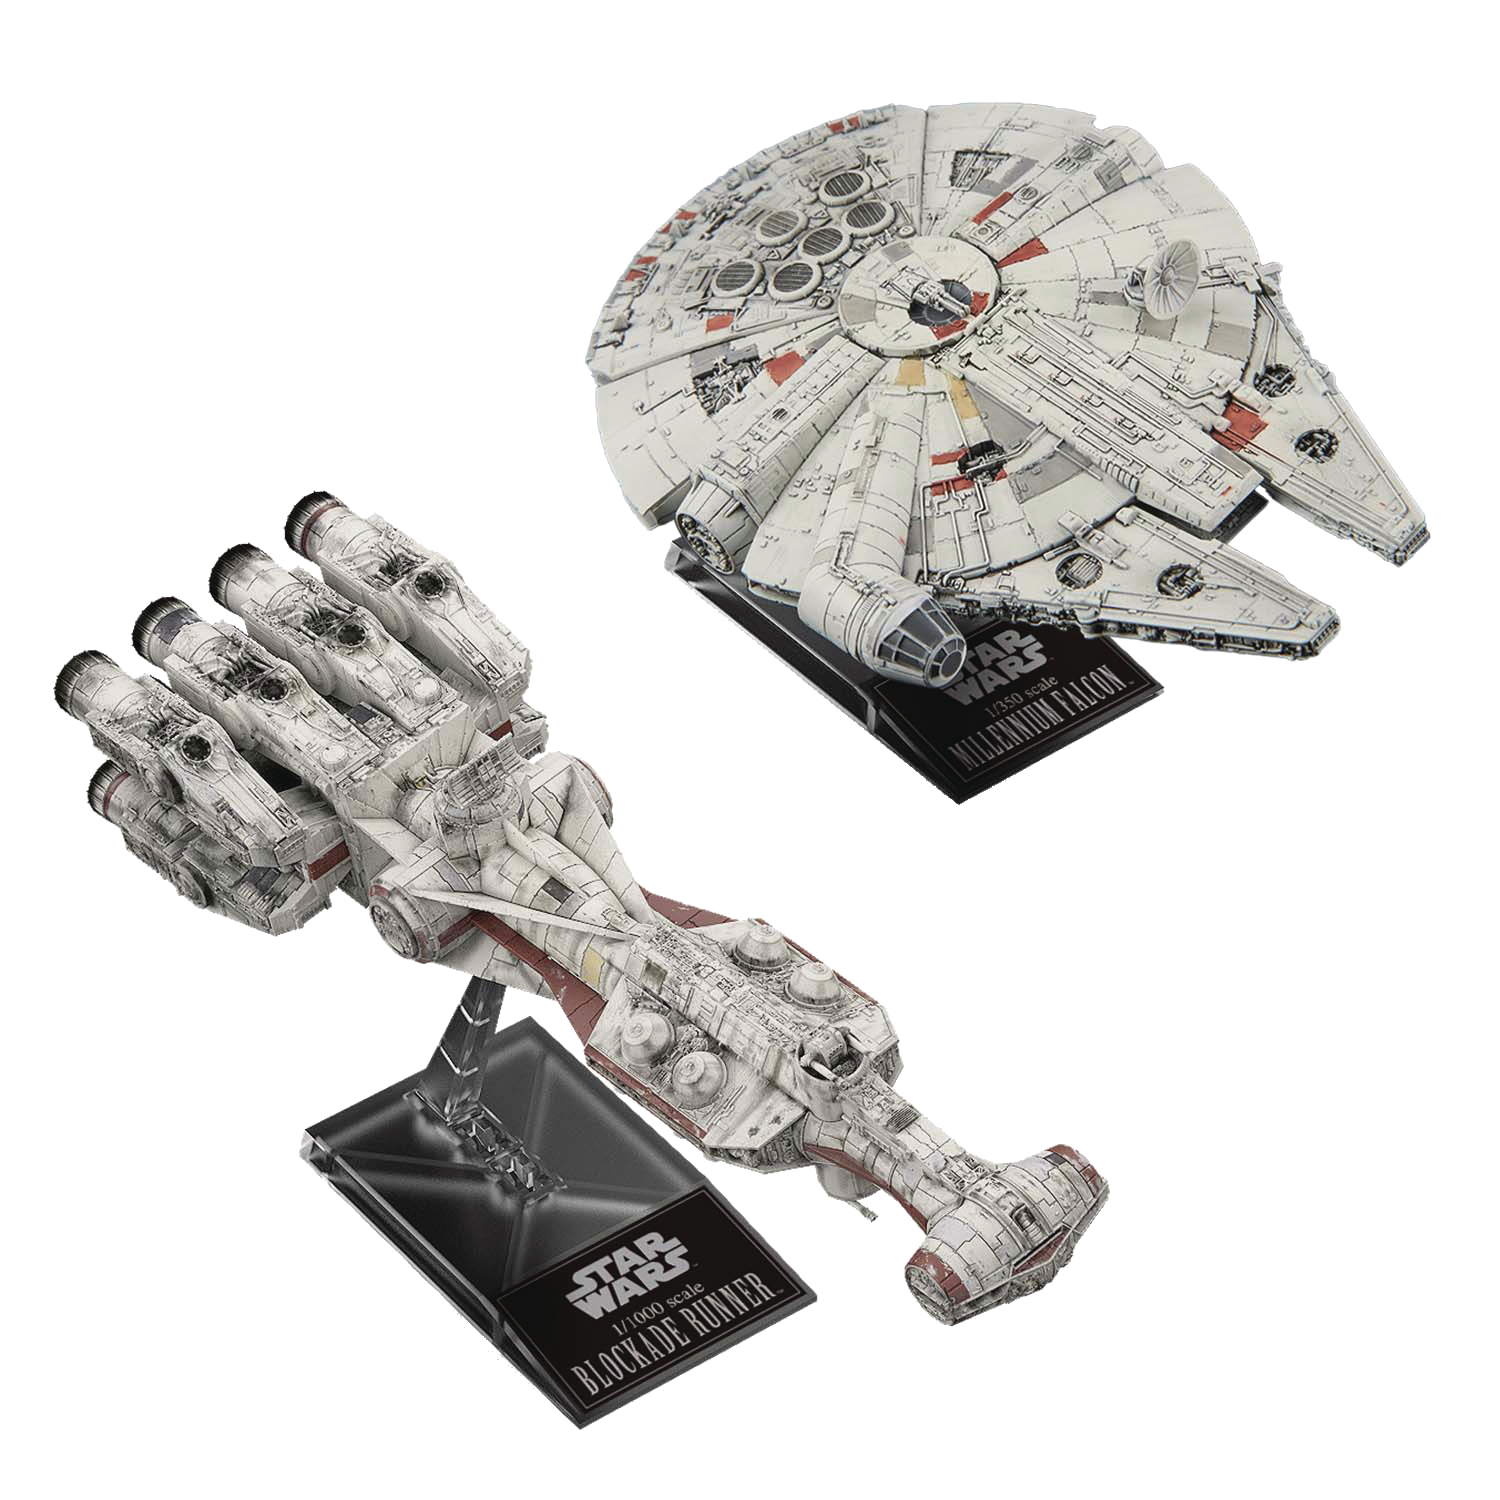 SW BLOCKADE RUNNER 1/1000 & MILLENNIUM FALCON 1/350 MODEL (N